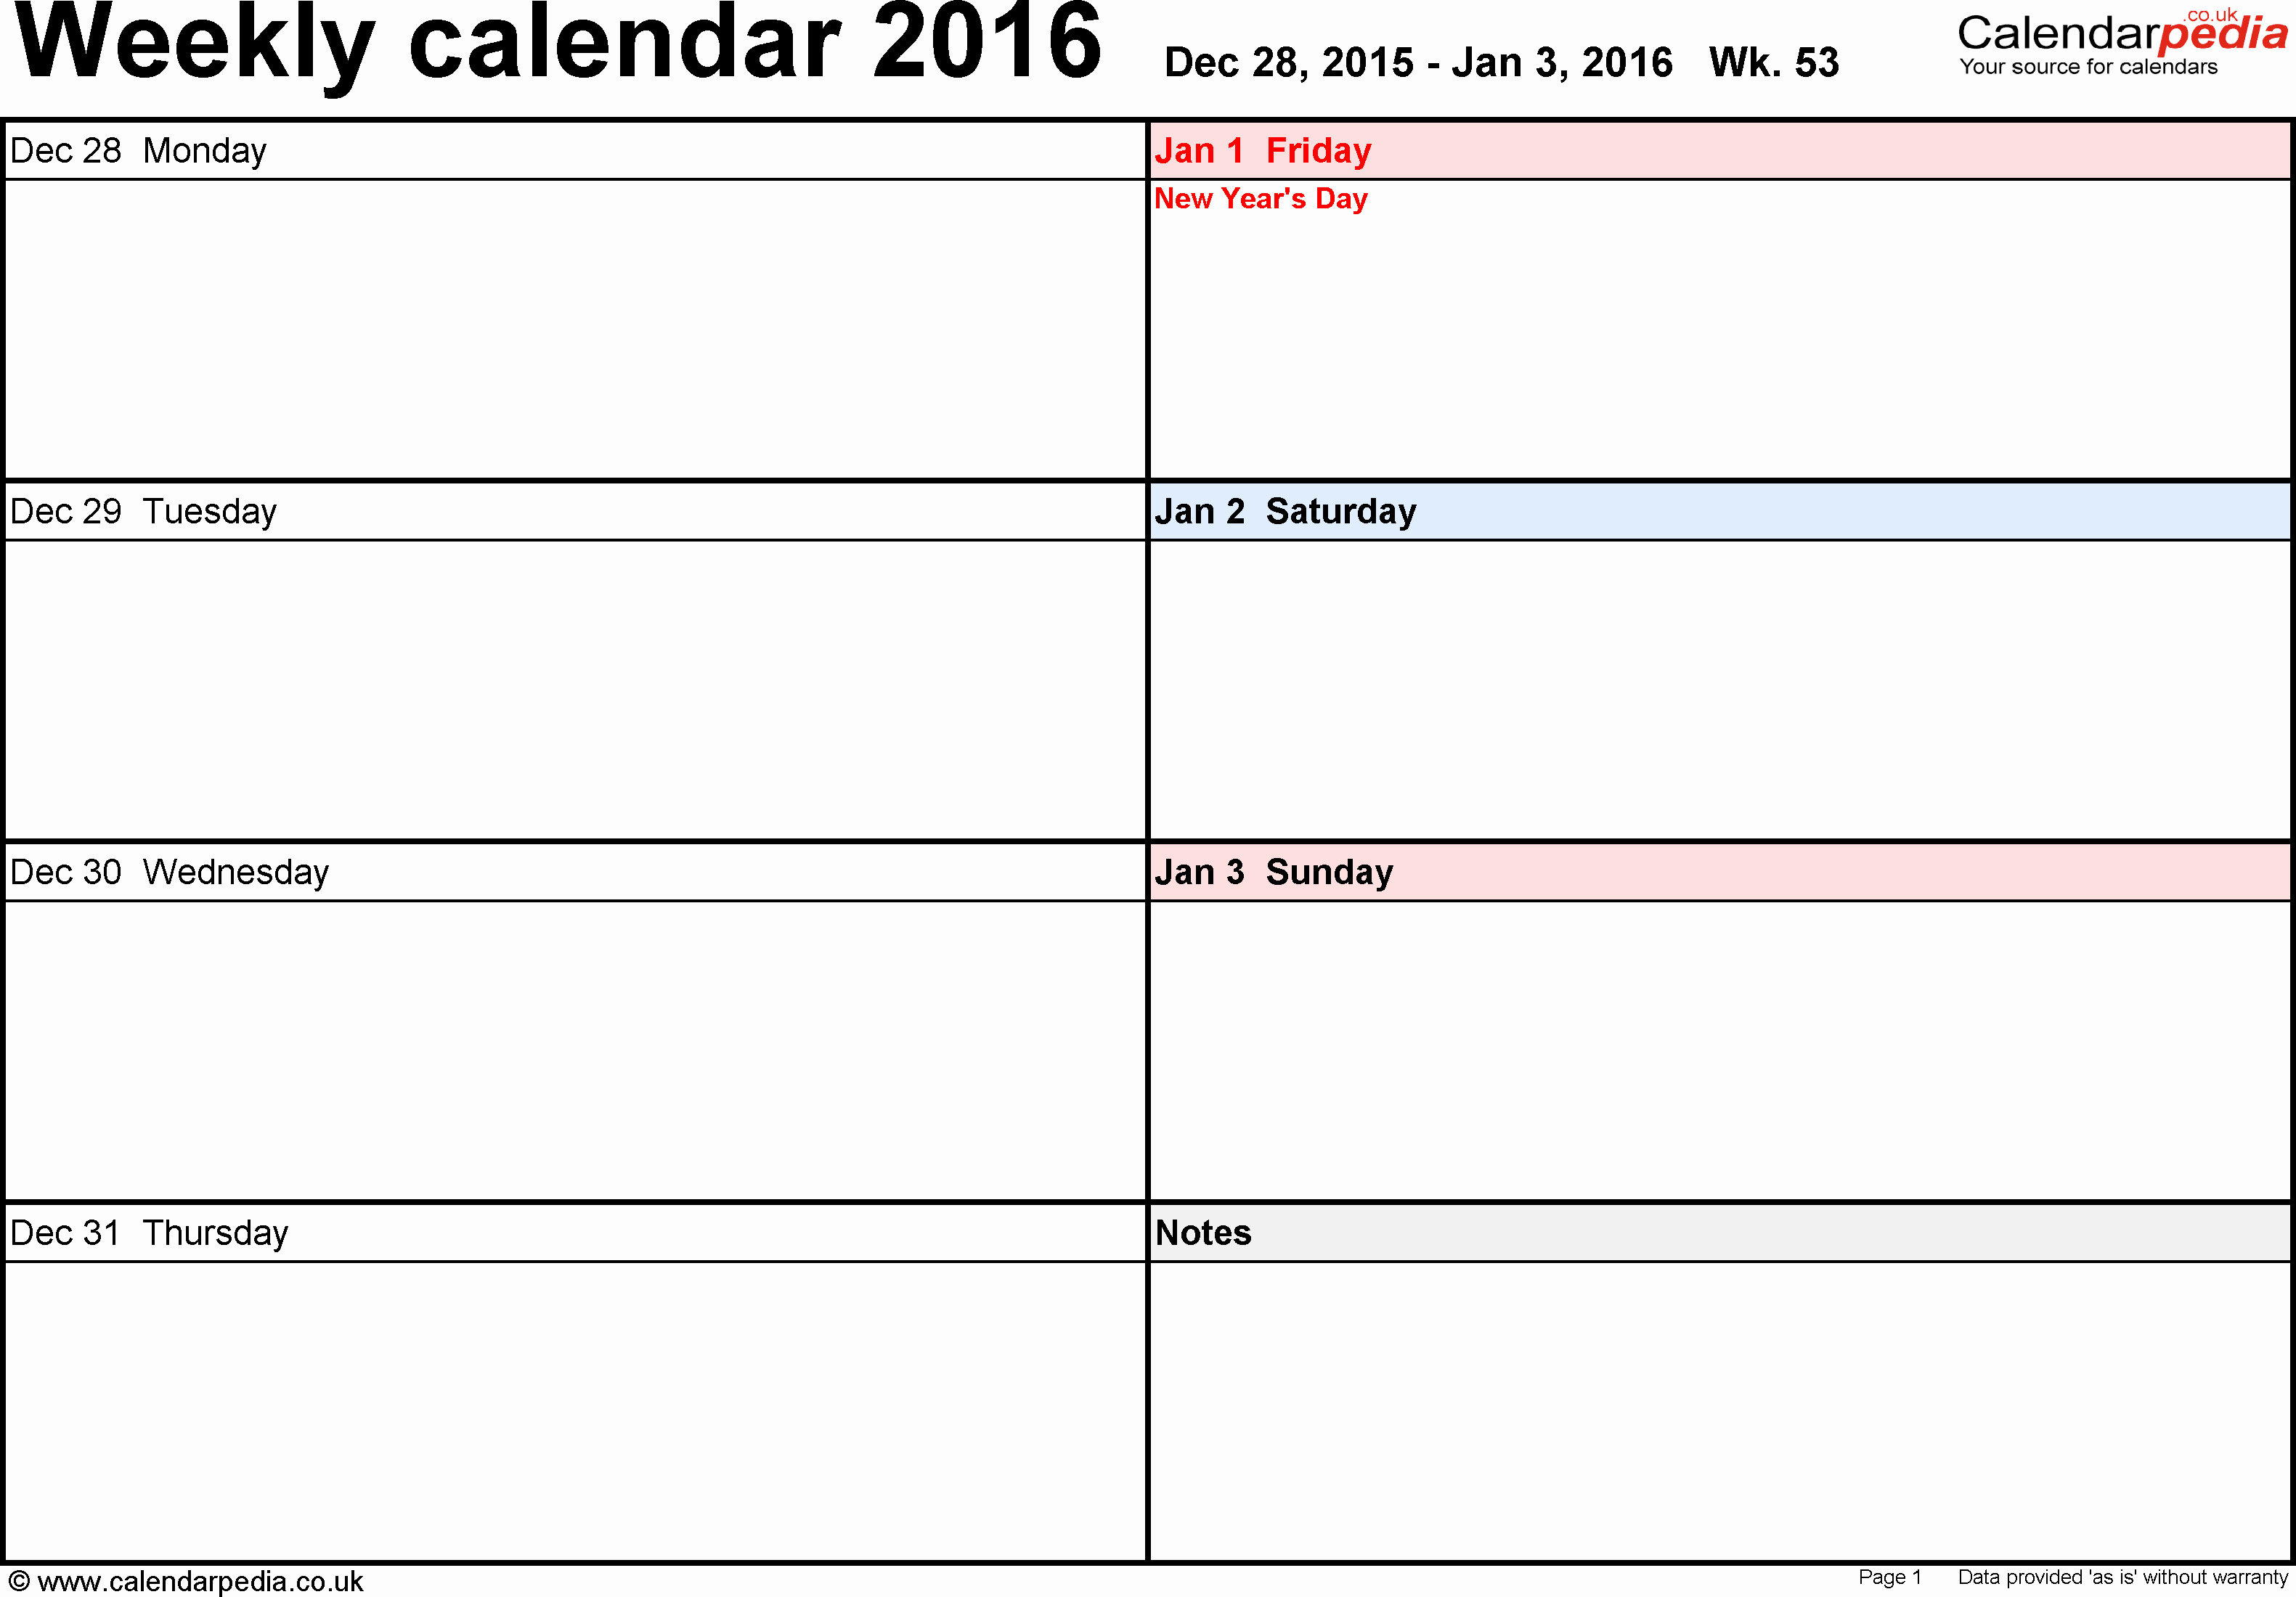 Free Printable Calendar 2016 Templates Beautiful Weekly Calendar 2016